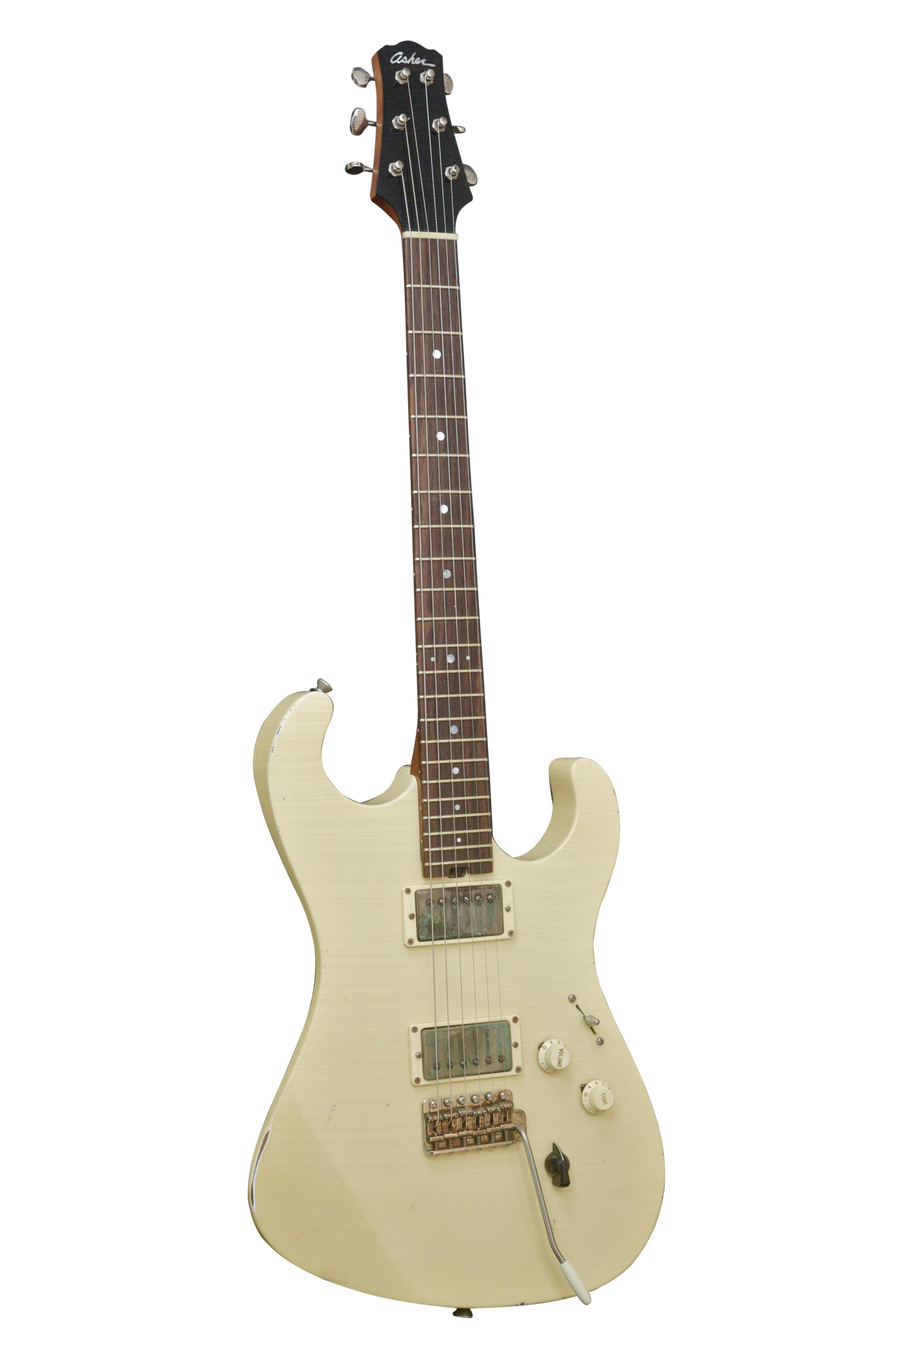 SOLD Asher S Custom Guitar in Olympic White Nitro Relic Finish, #858